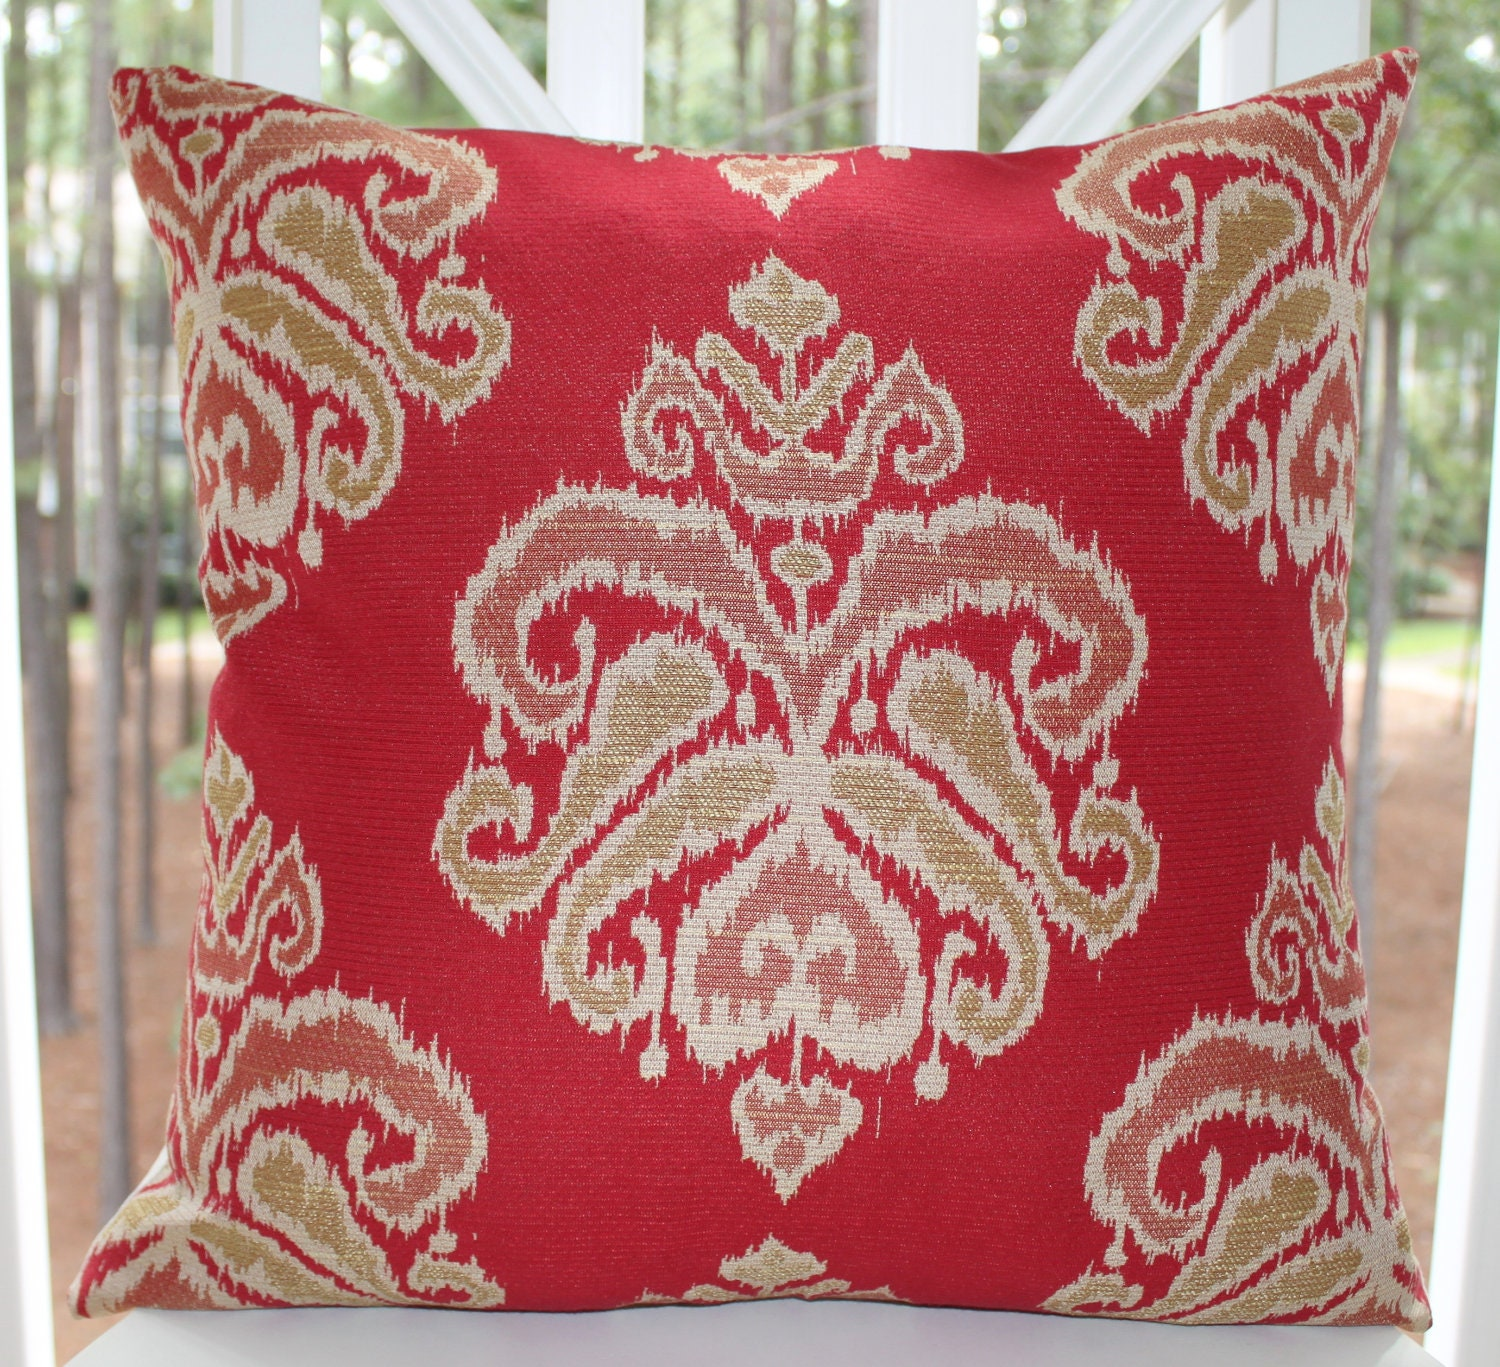 Decorative Red Pillow Red Ikat Pillow Red Damask Scroll